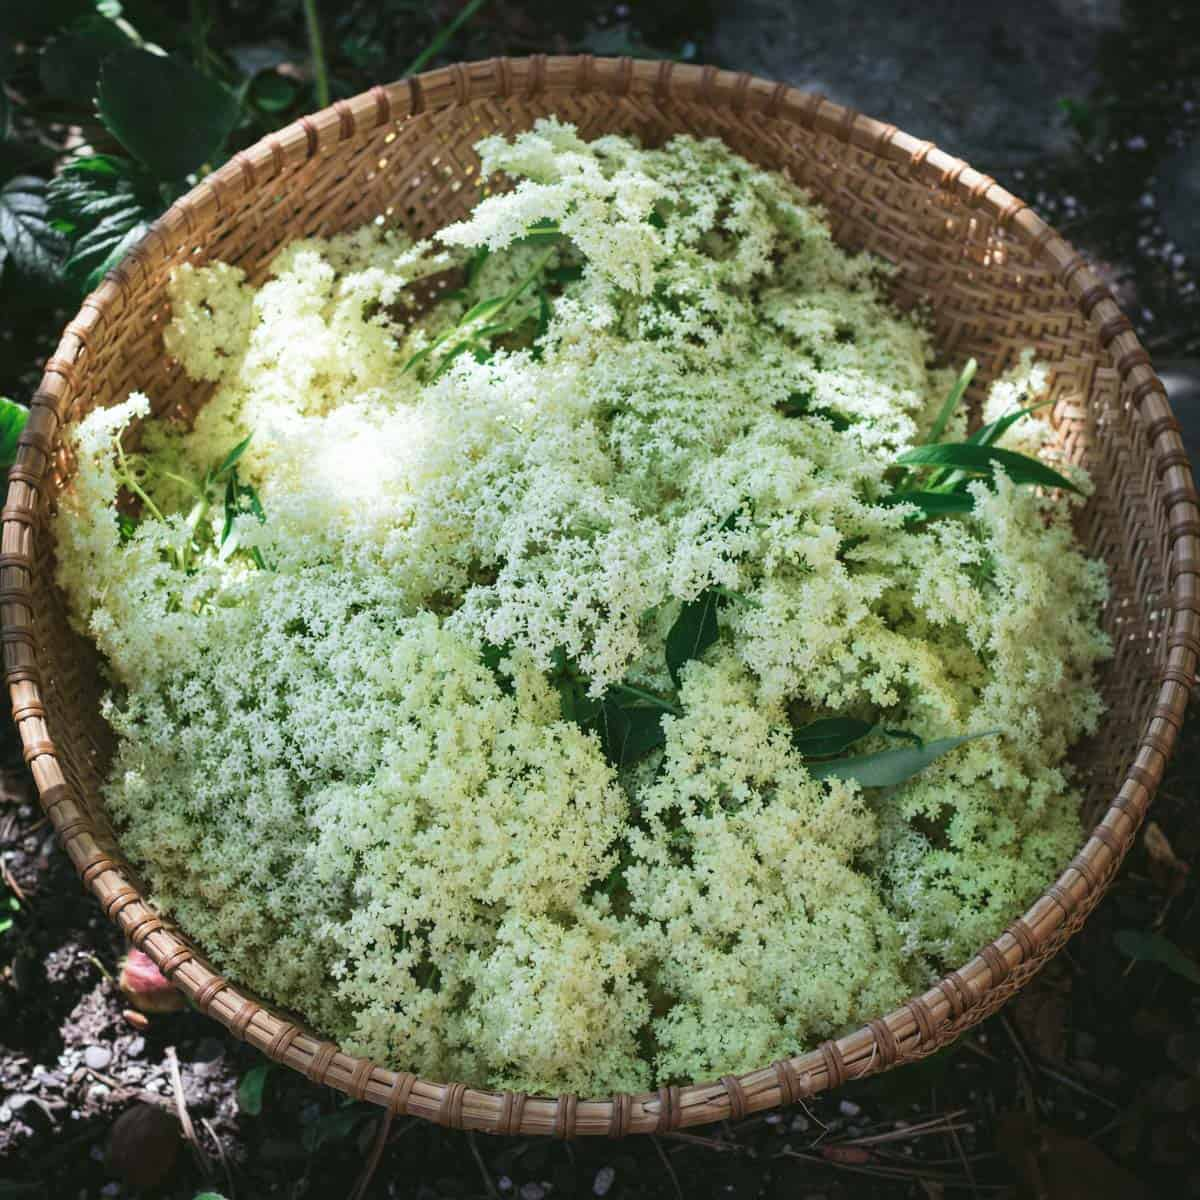 a basket of harvested elderflowers